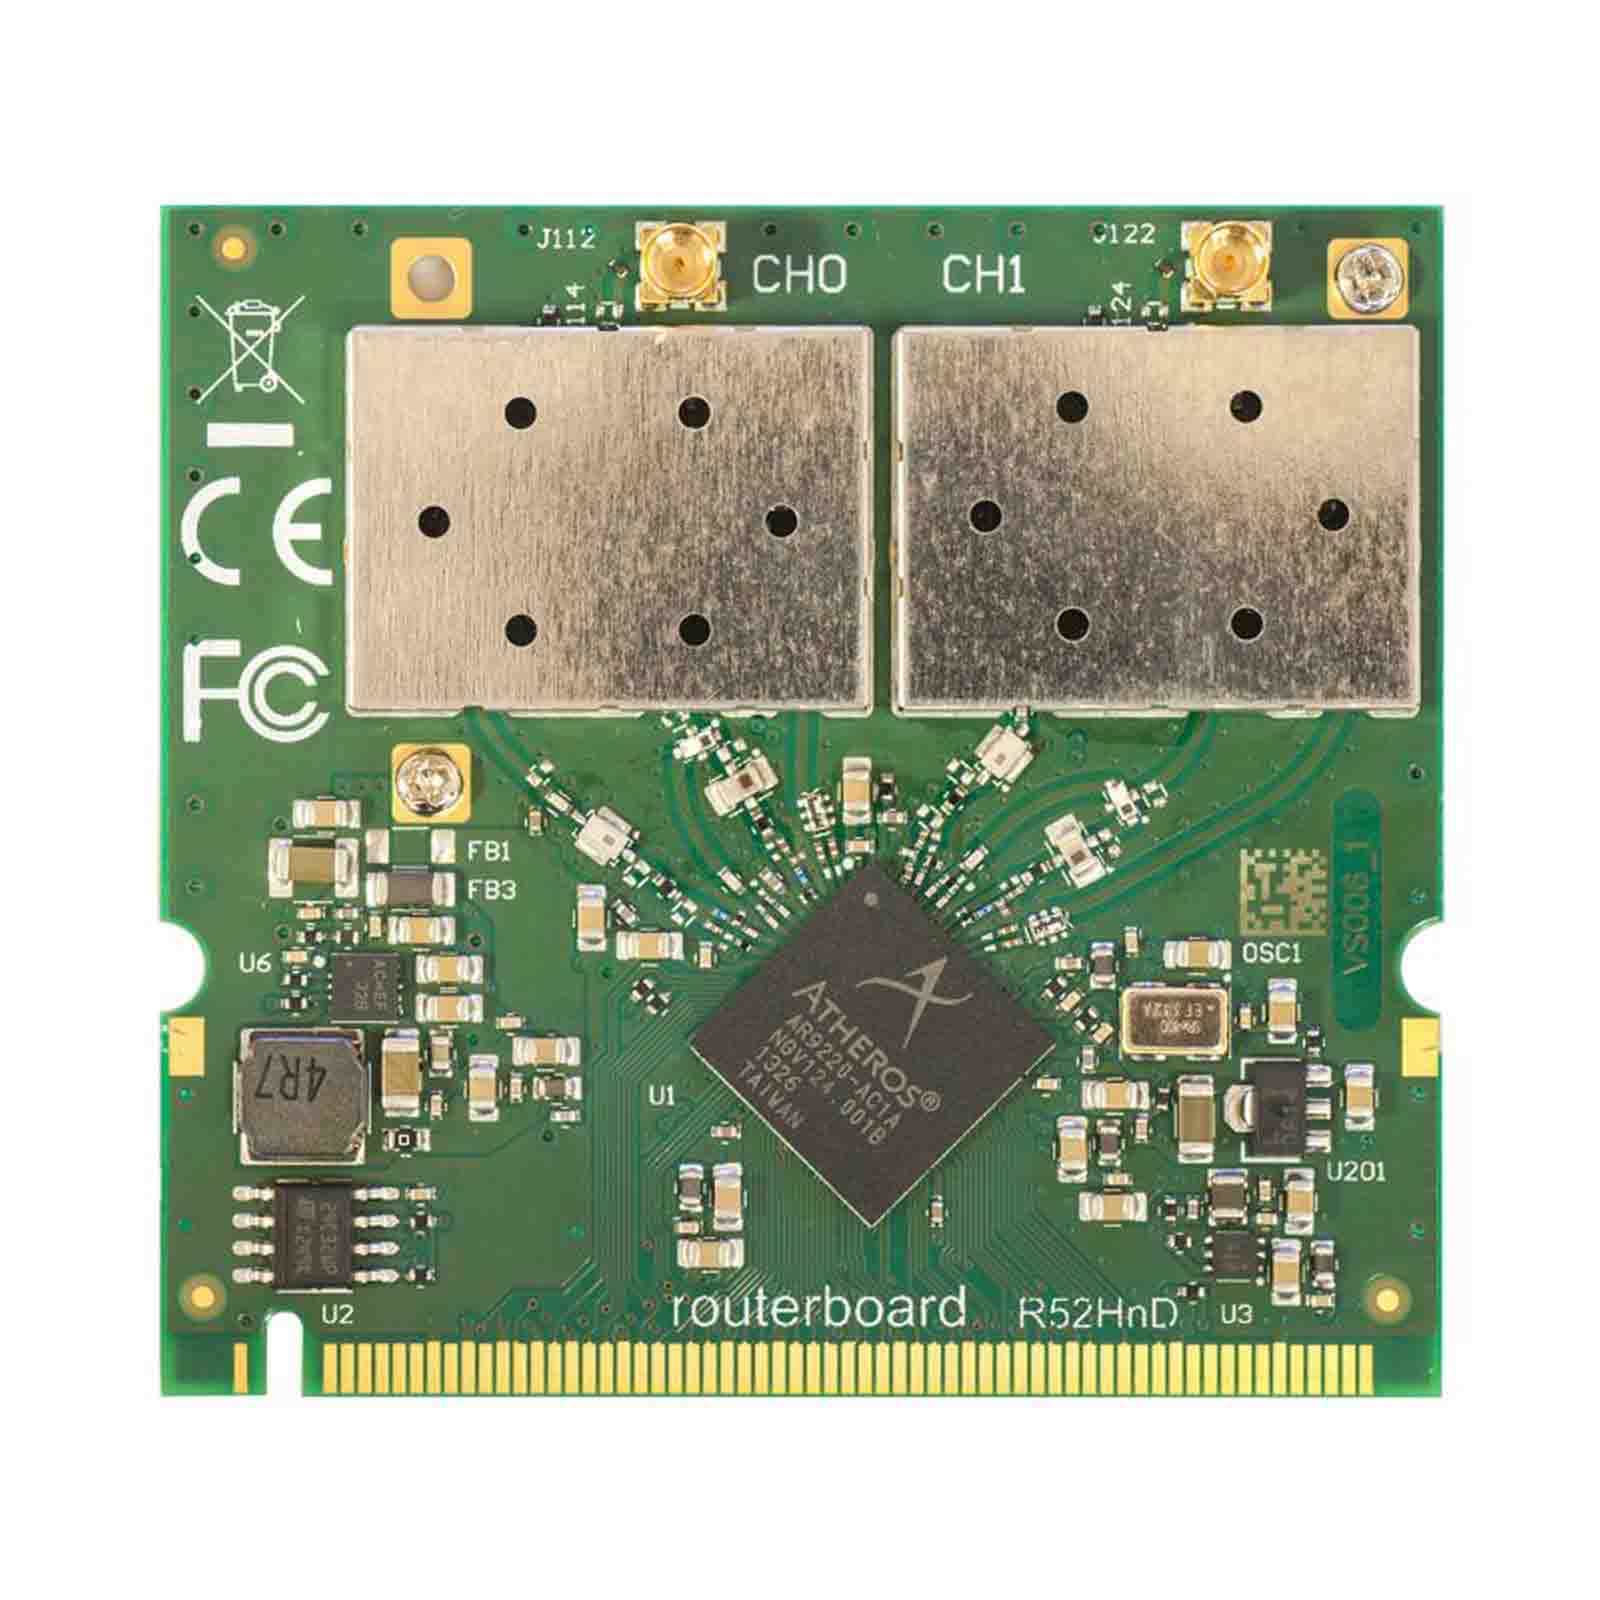 RouterBoard R52HnD